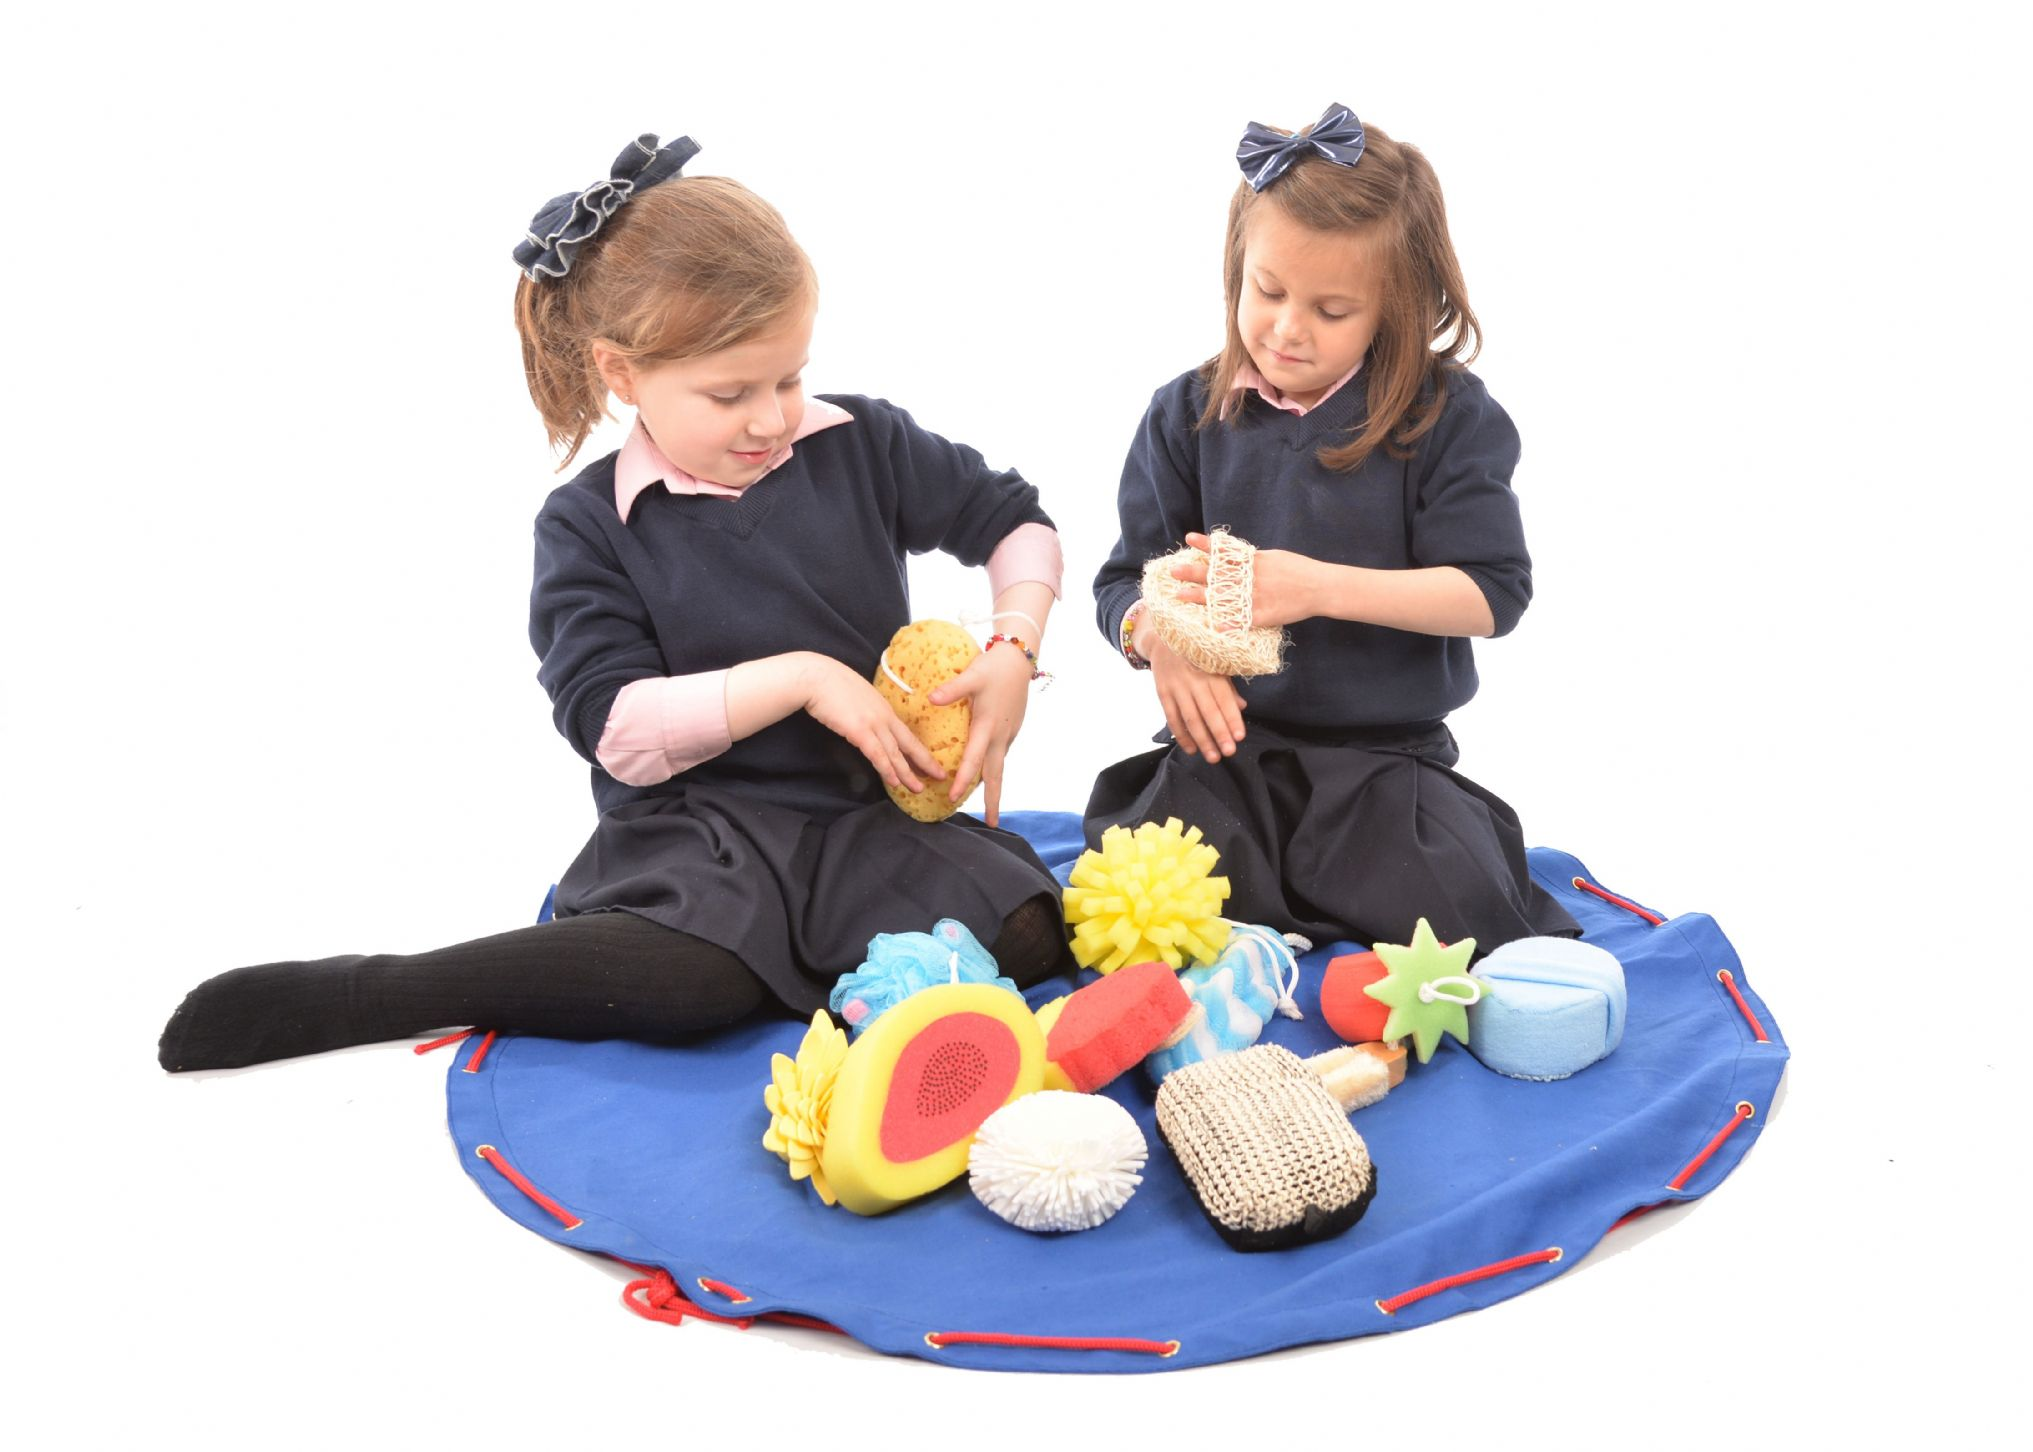 Toys For Adults With Disabilities : Tactile sponge set for children with sensory needs visual